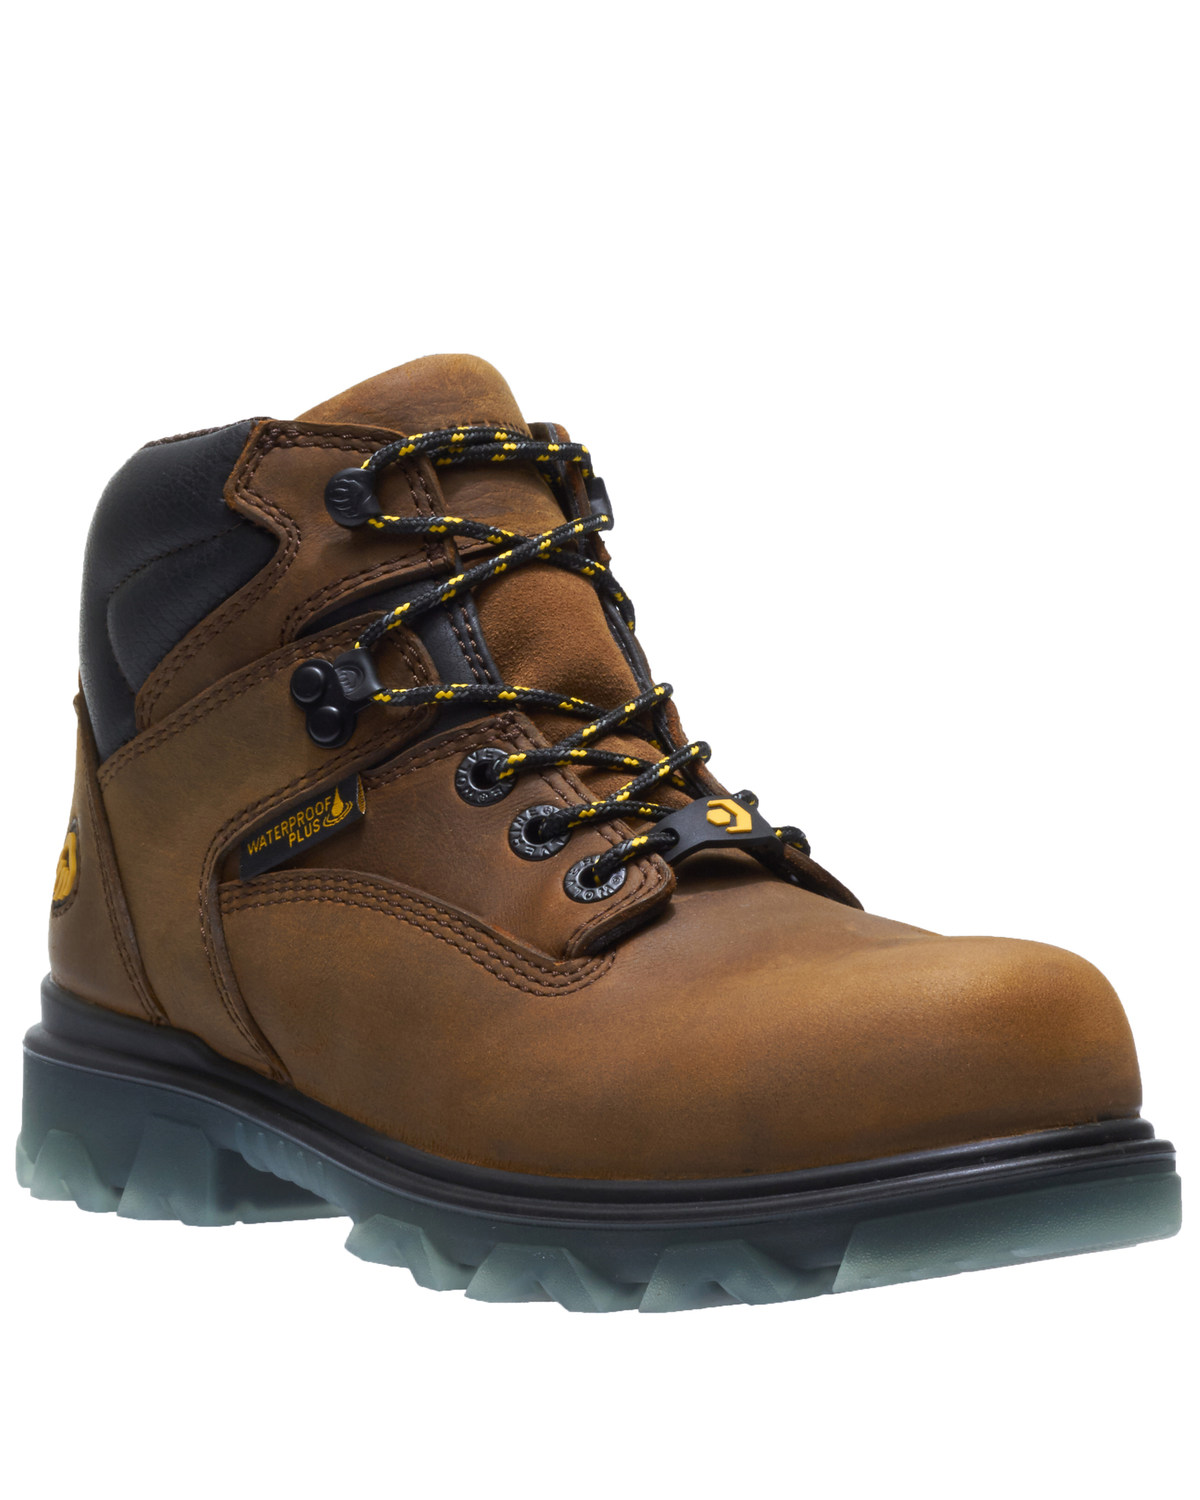 Wolverine Women's I-90 EPX Work Boots